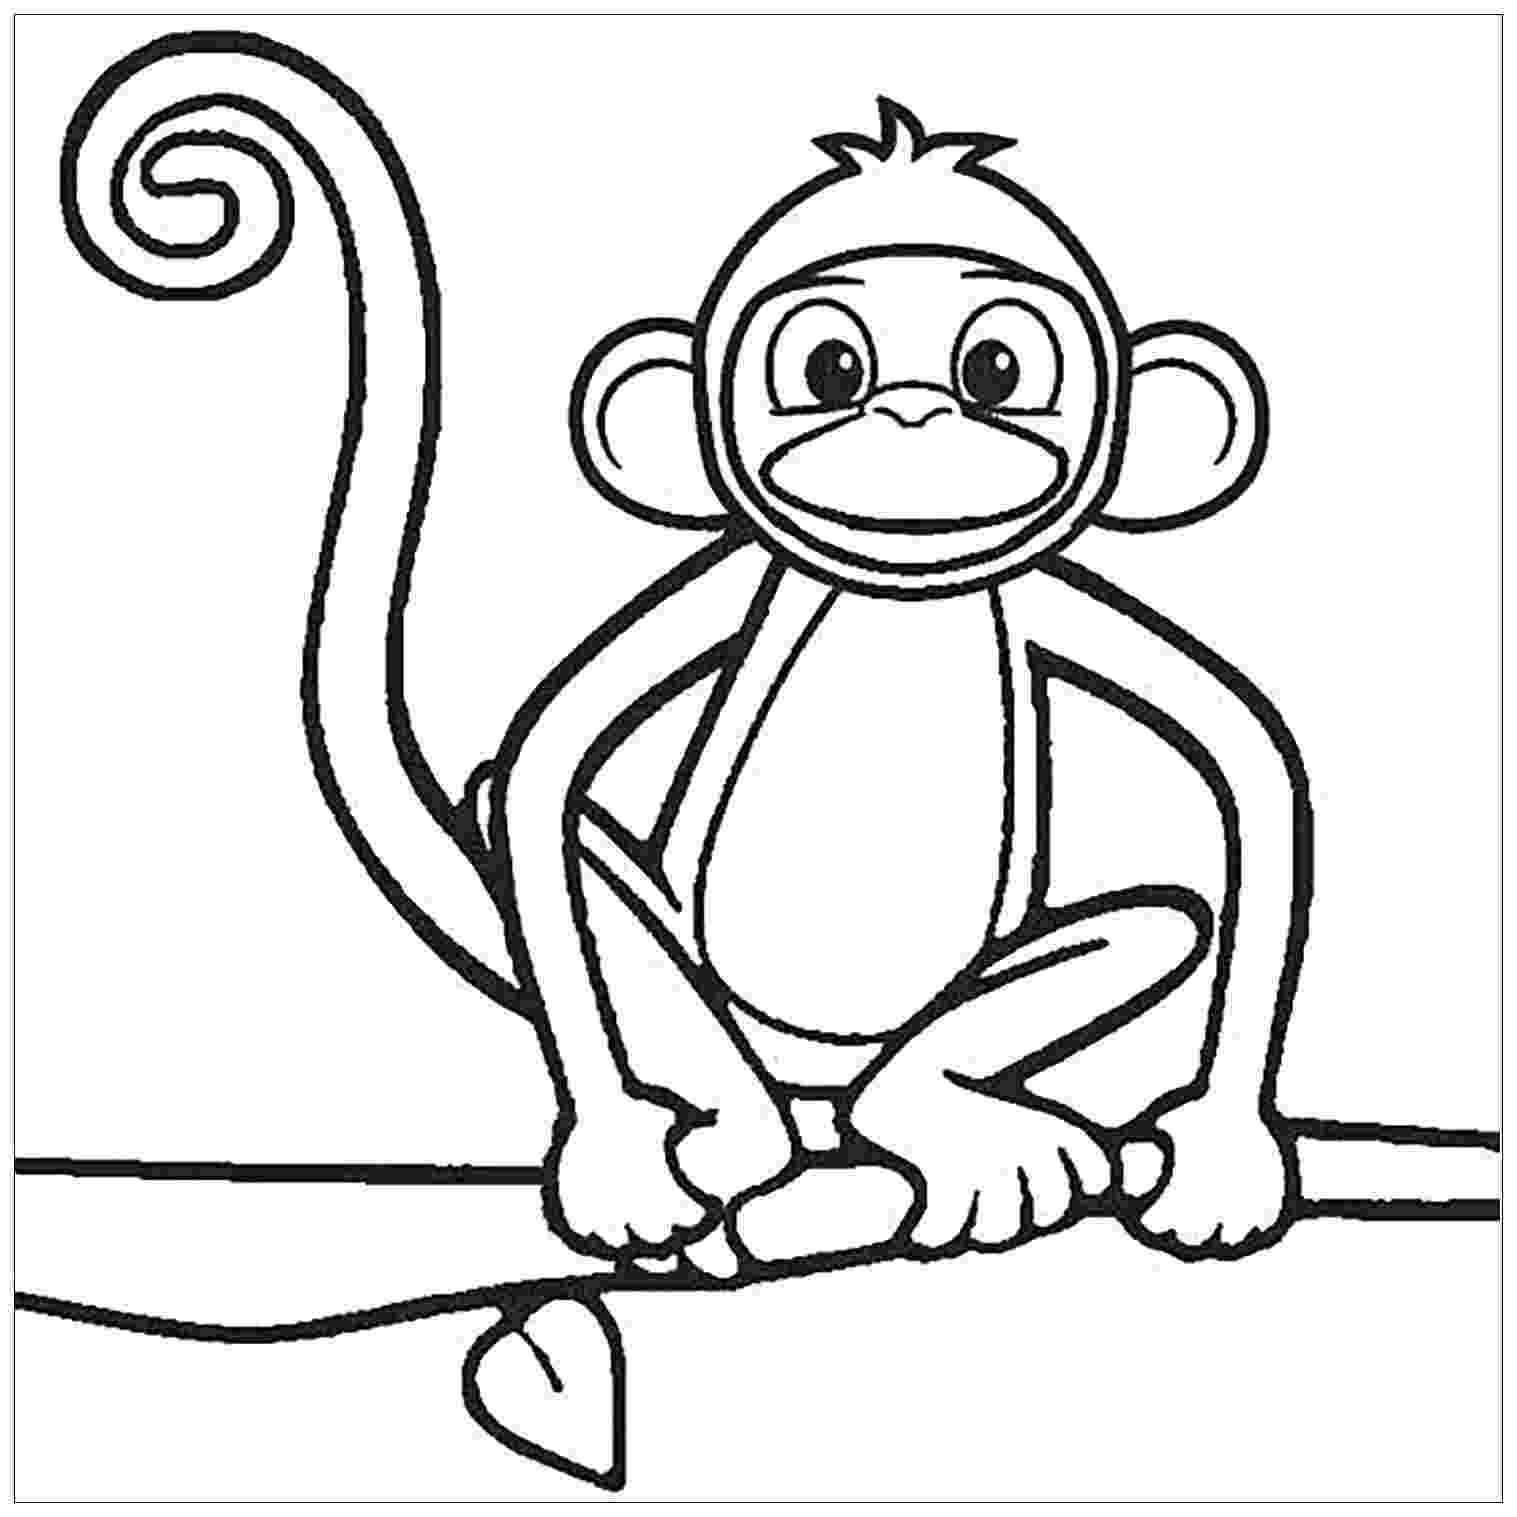 monkey color pages baby monkey coloring pages to download and print for free monkey color pages